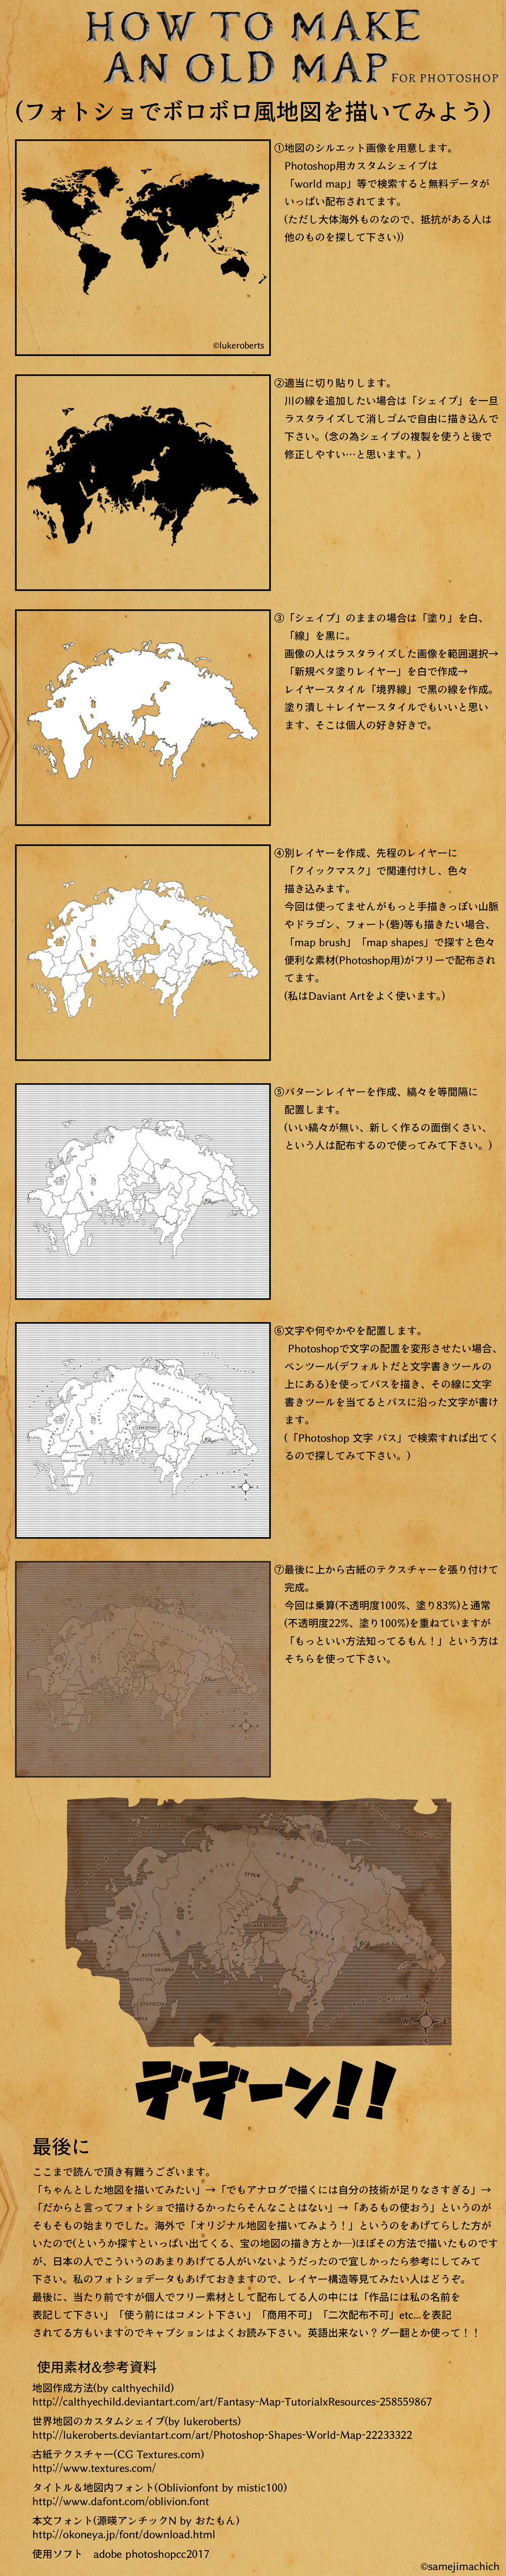 how to make an old map (mainly, for japanese) by samejimachich